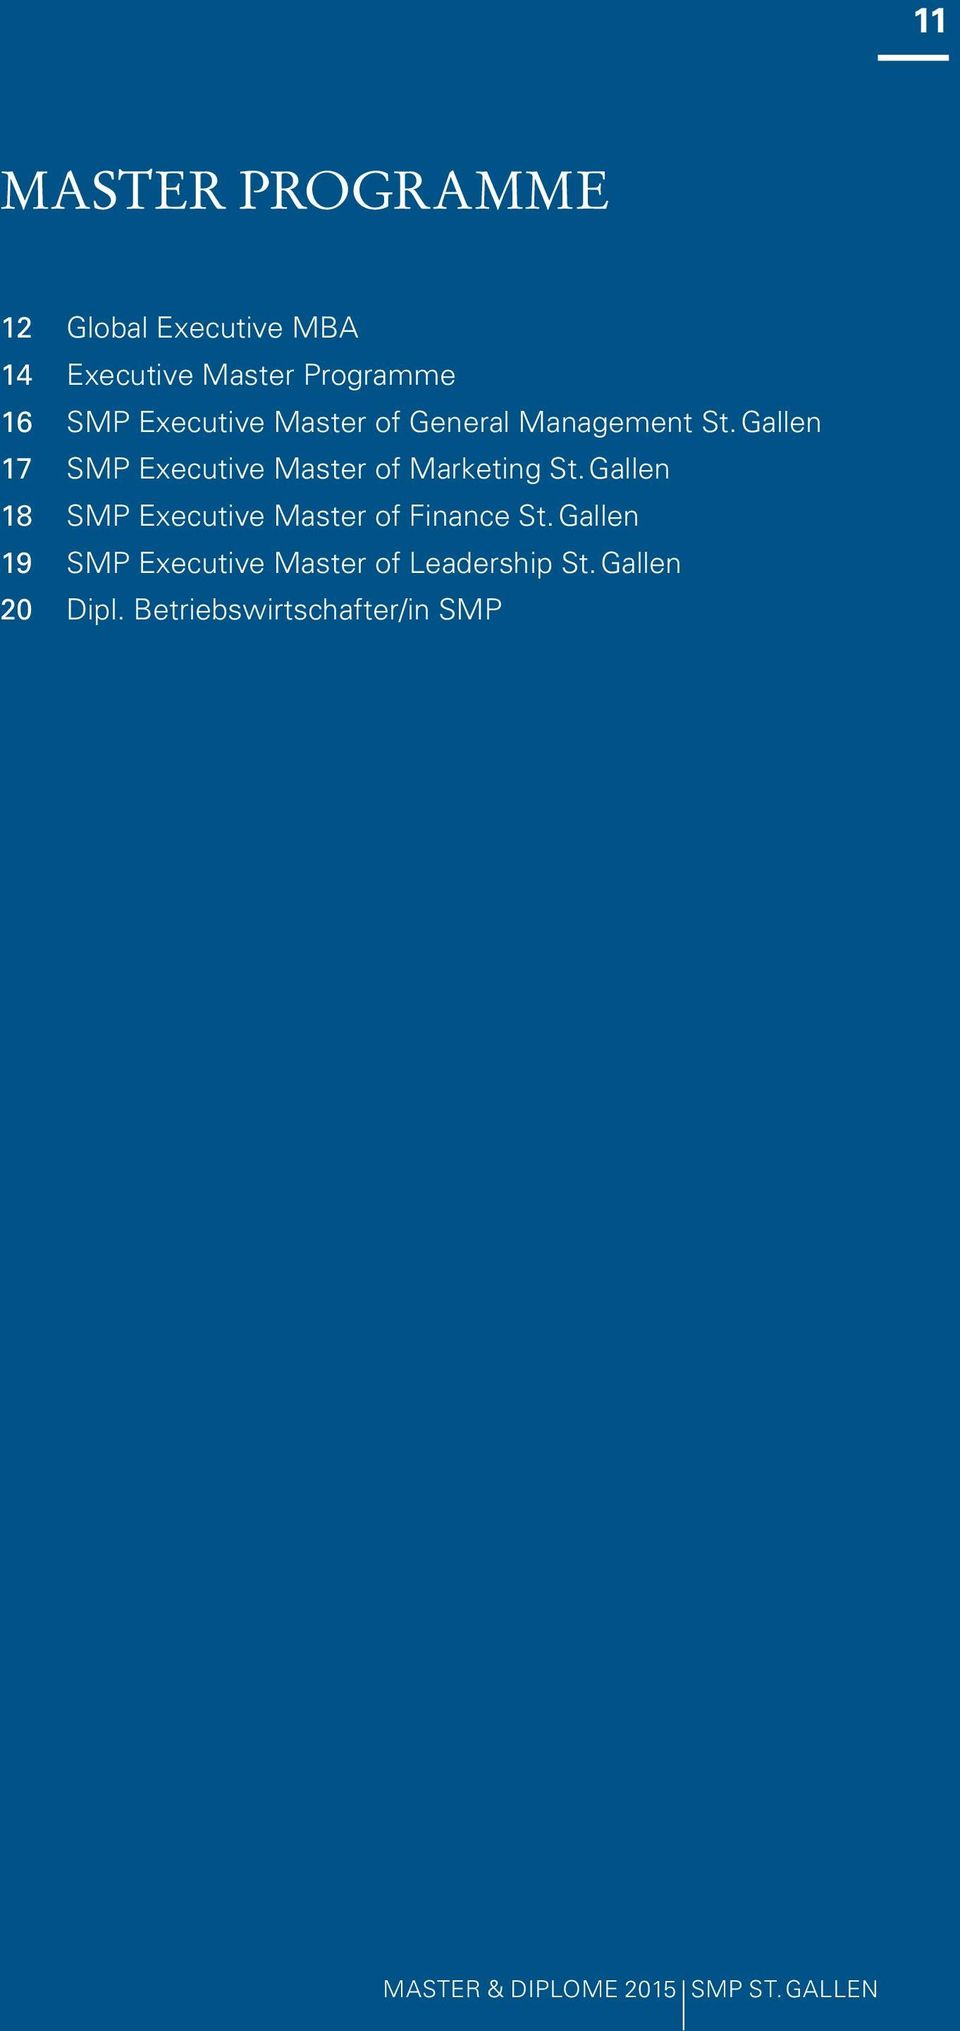 Gallen 17 SMP Executive Master of Marketing St.